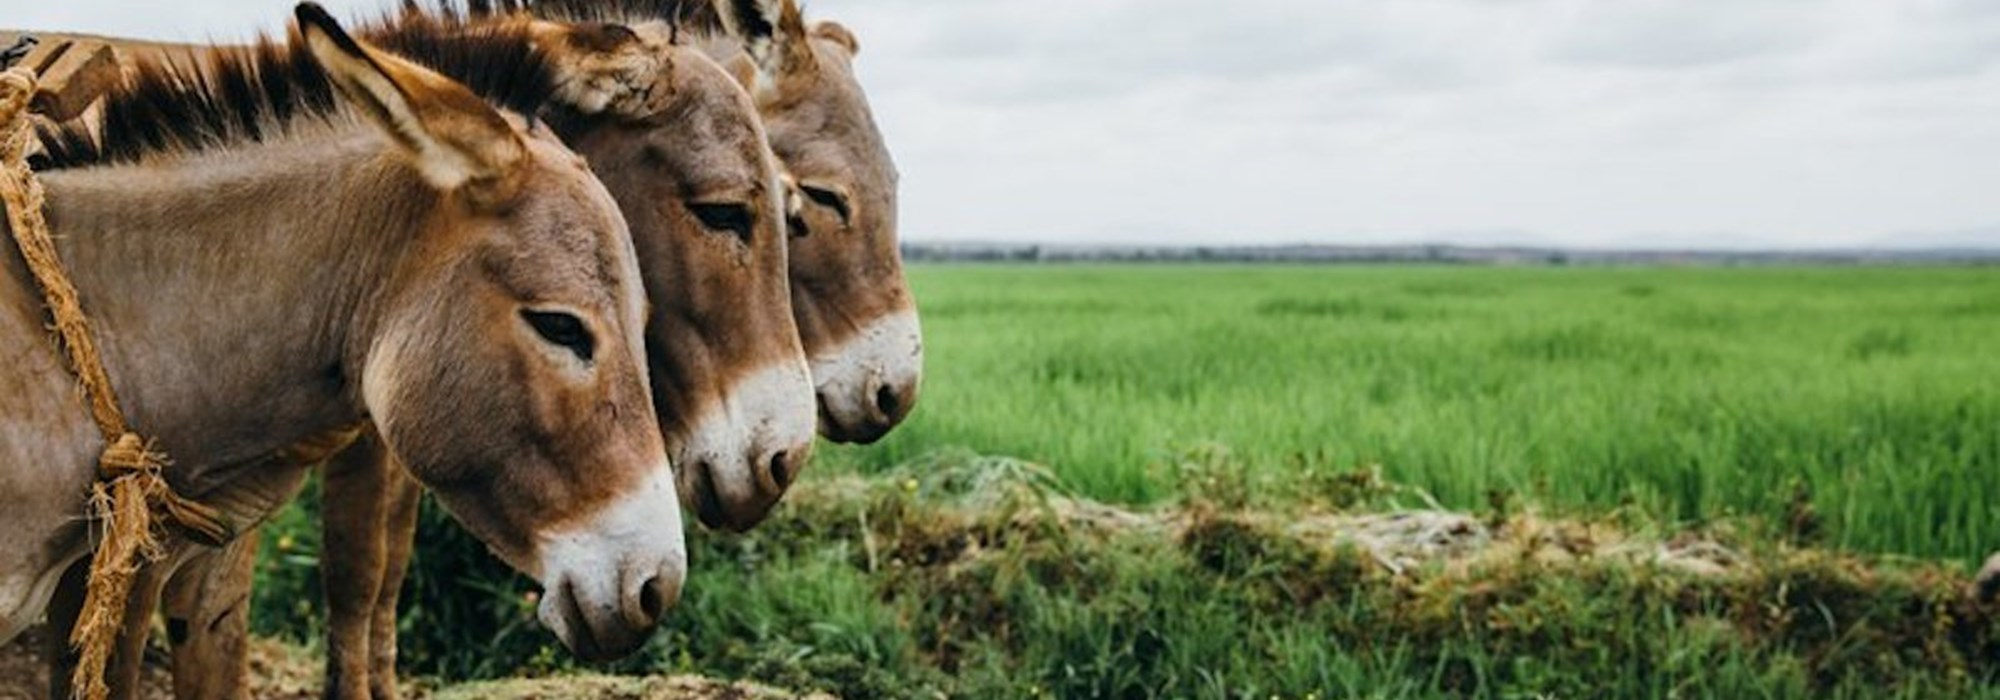 Two donkeys close up